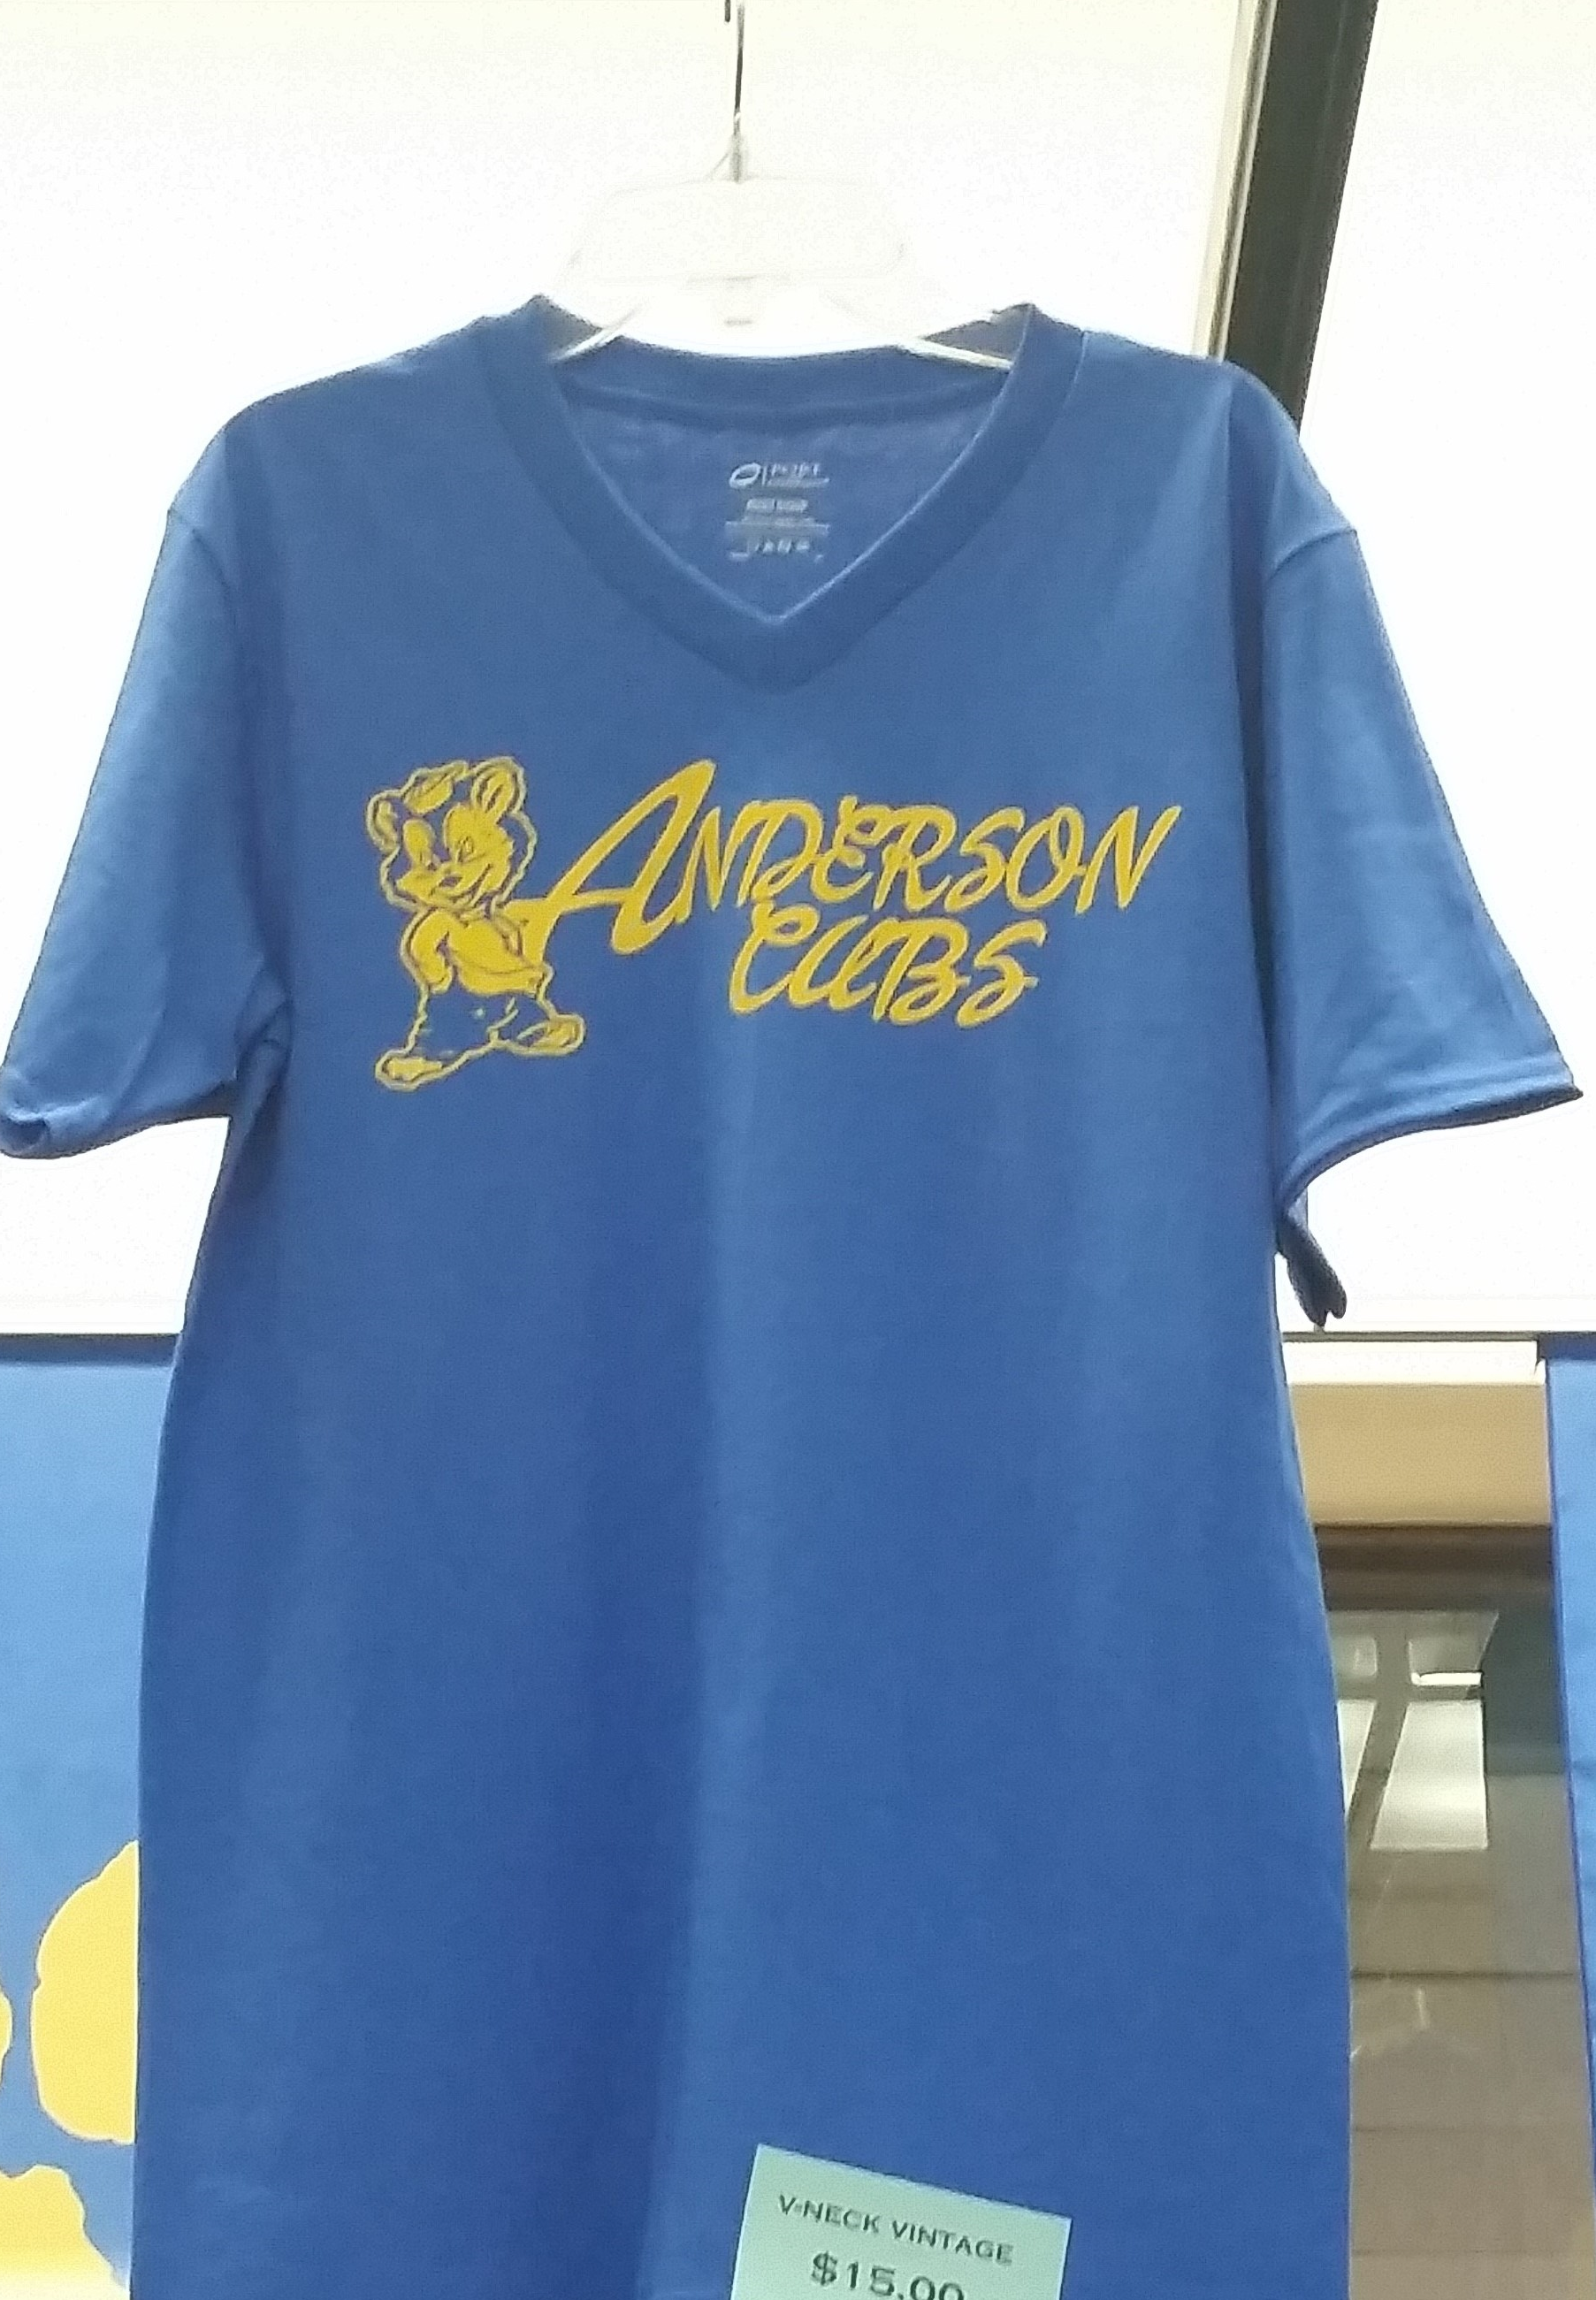 Anderson Cubs V-Neck T-Shirt